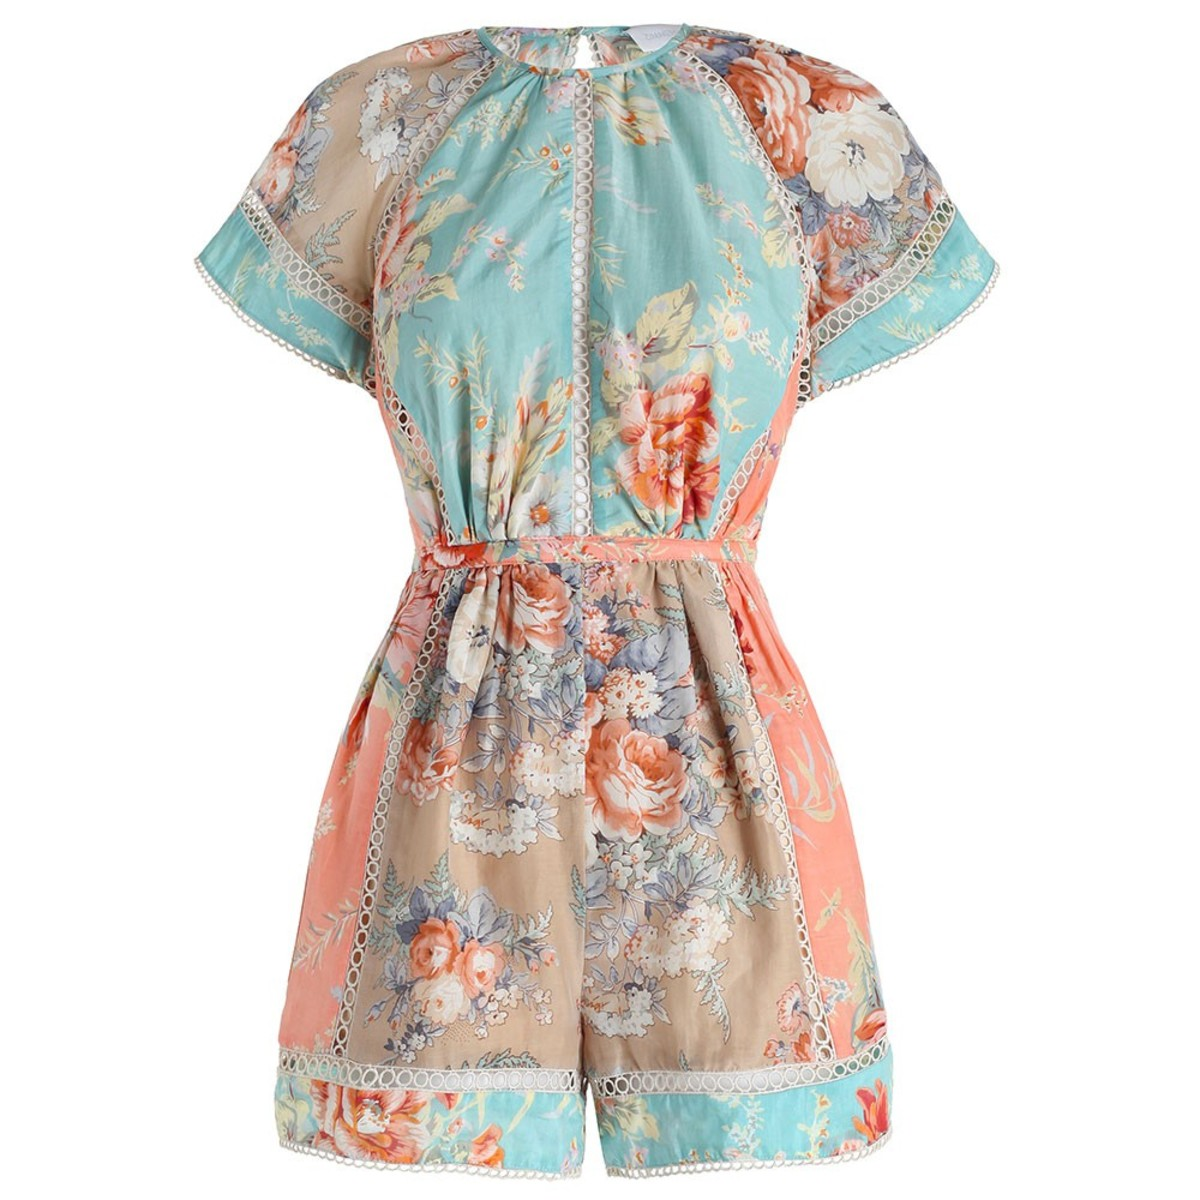 Anais floral playsuit, $420, available at Zimmermann.